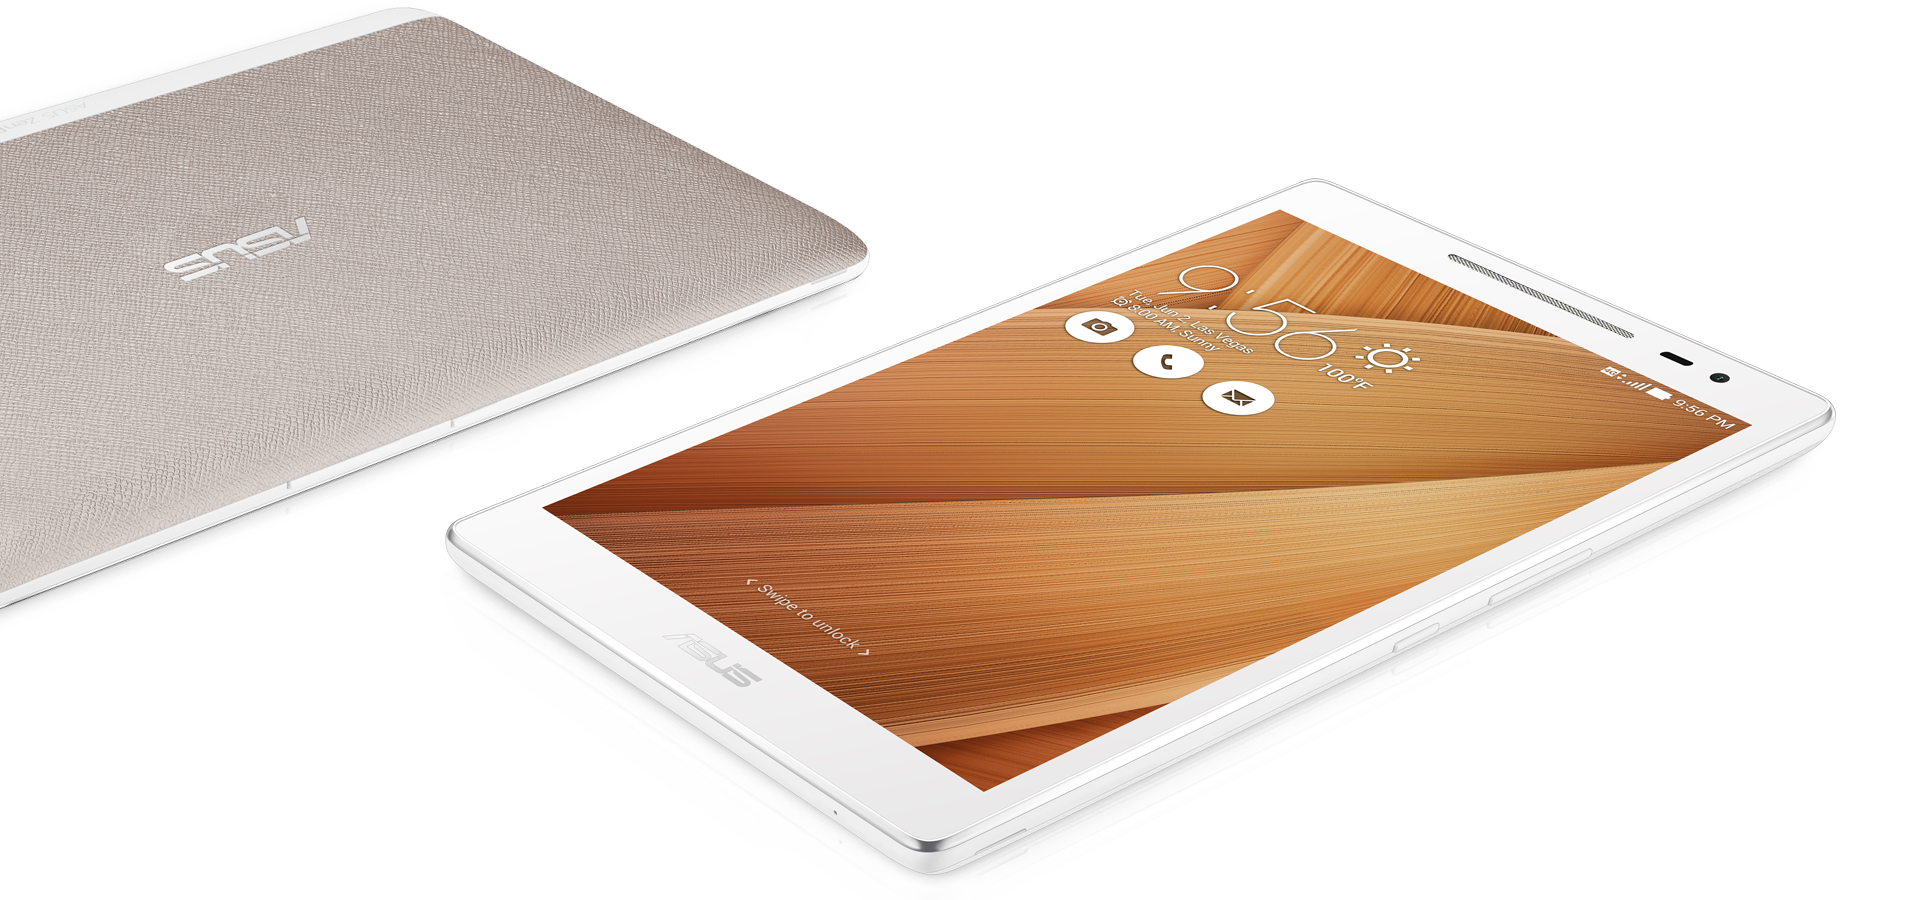 http://www.asus.com/MY/Tablets/ASUS_ZenPad_80_Z380KL/websites/global/products/GVdbbhmVKFr91qyj/imgs/Design1.png